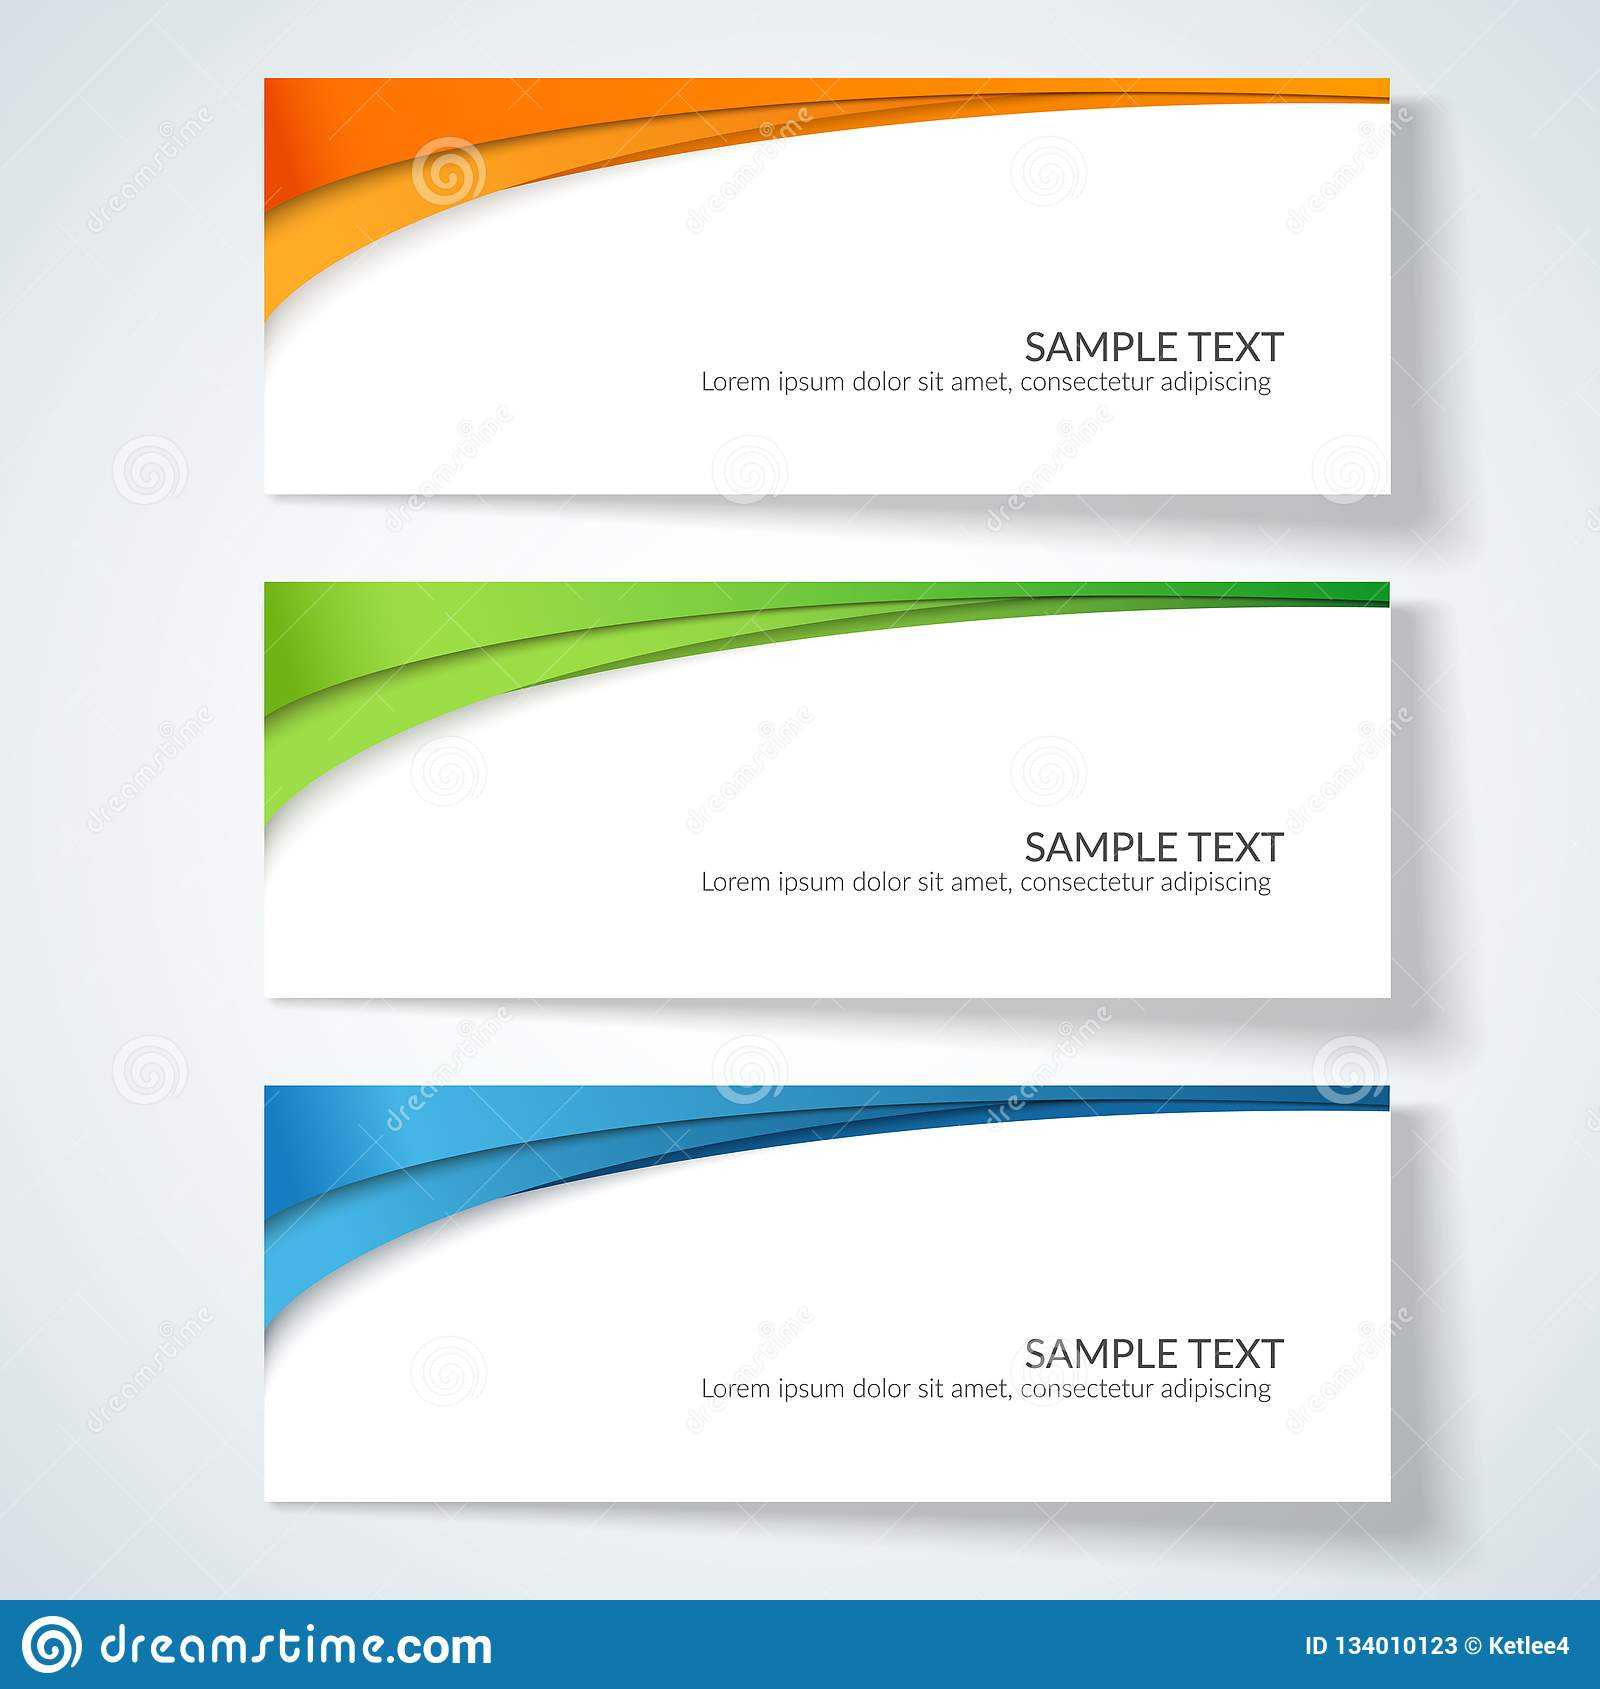 Card With Abstract Wavy Lines Orange Blue Green Stripes For Advertising Cards Templates